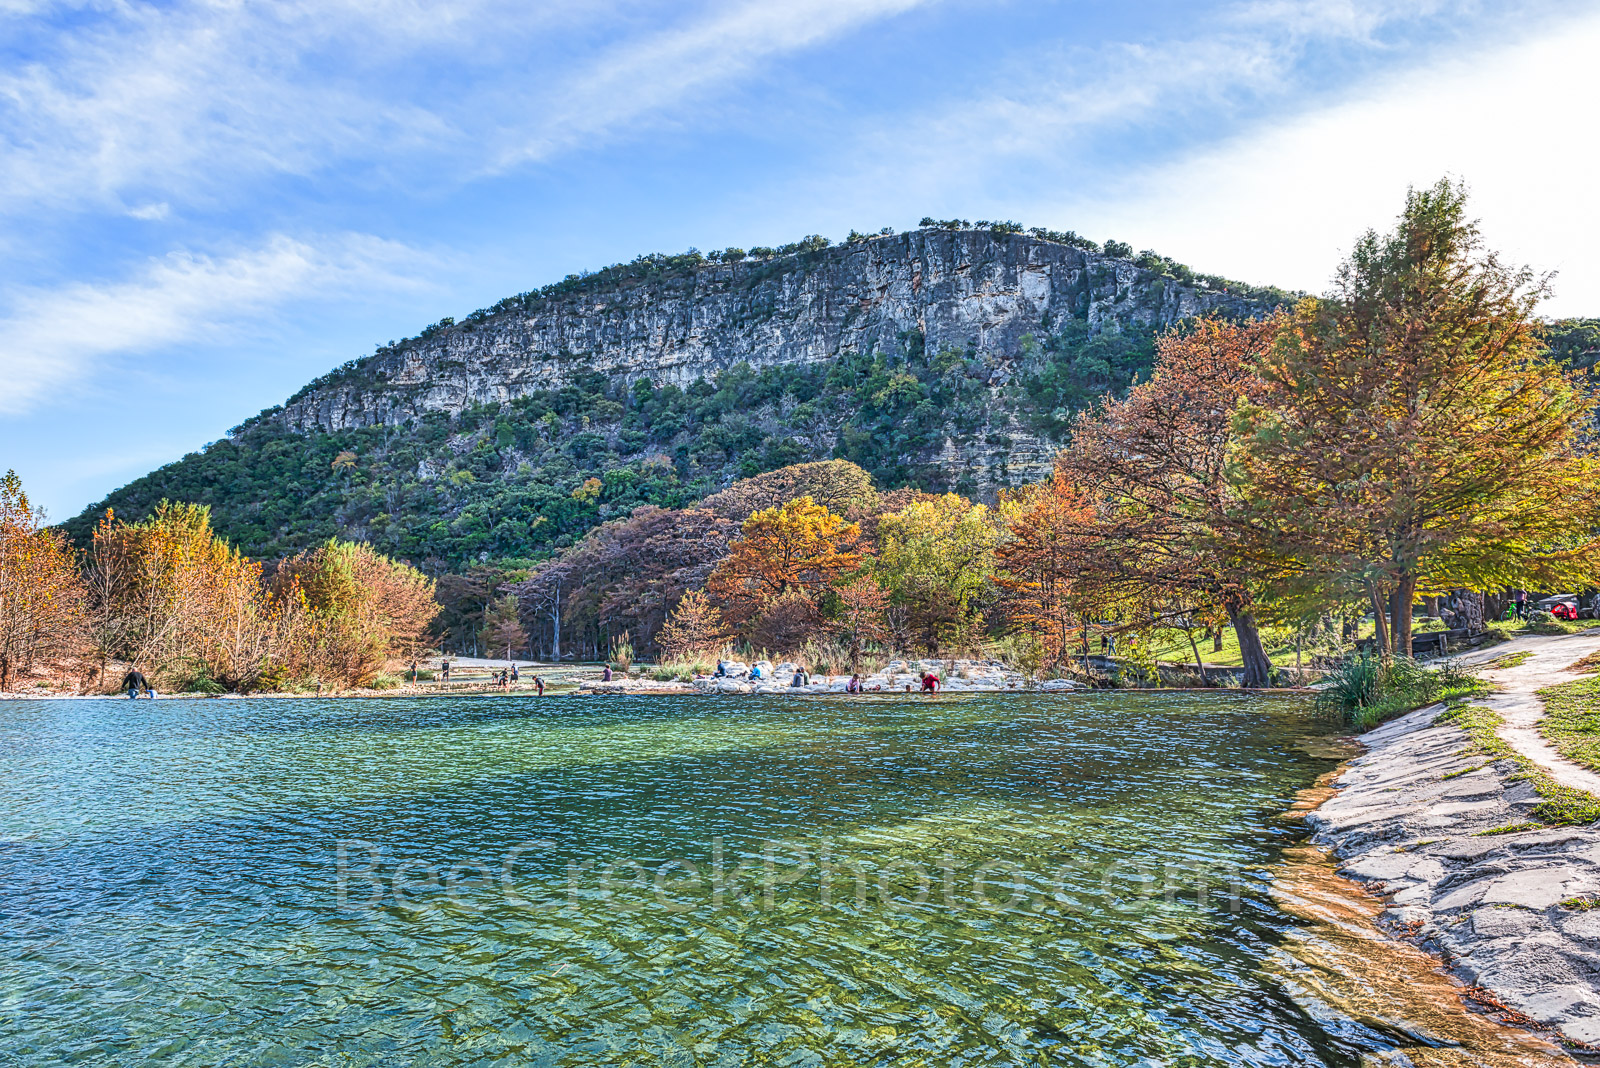 America, American, Frio River, Garner State Park, blue green waters, blue water, clear water, colorful, fall, fall cypress trees, landscape, landscapes, lifestyle, people, rural, rural landscape, rura, photo